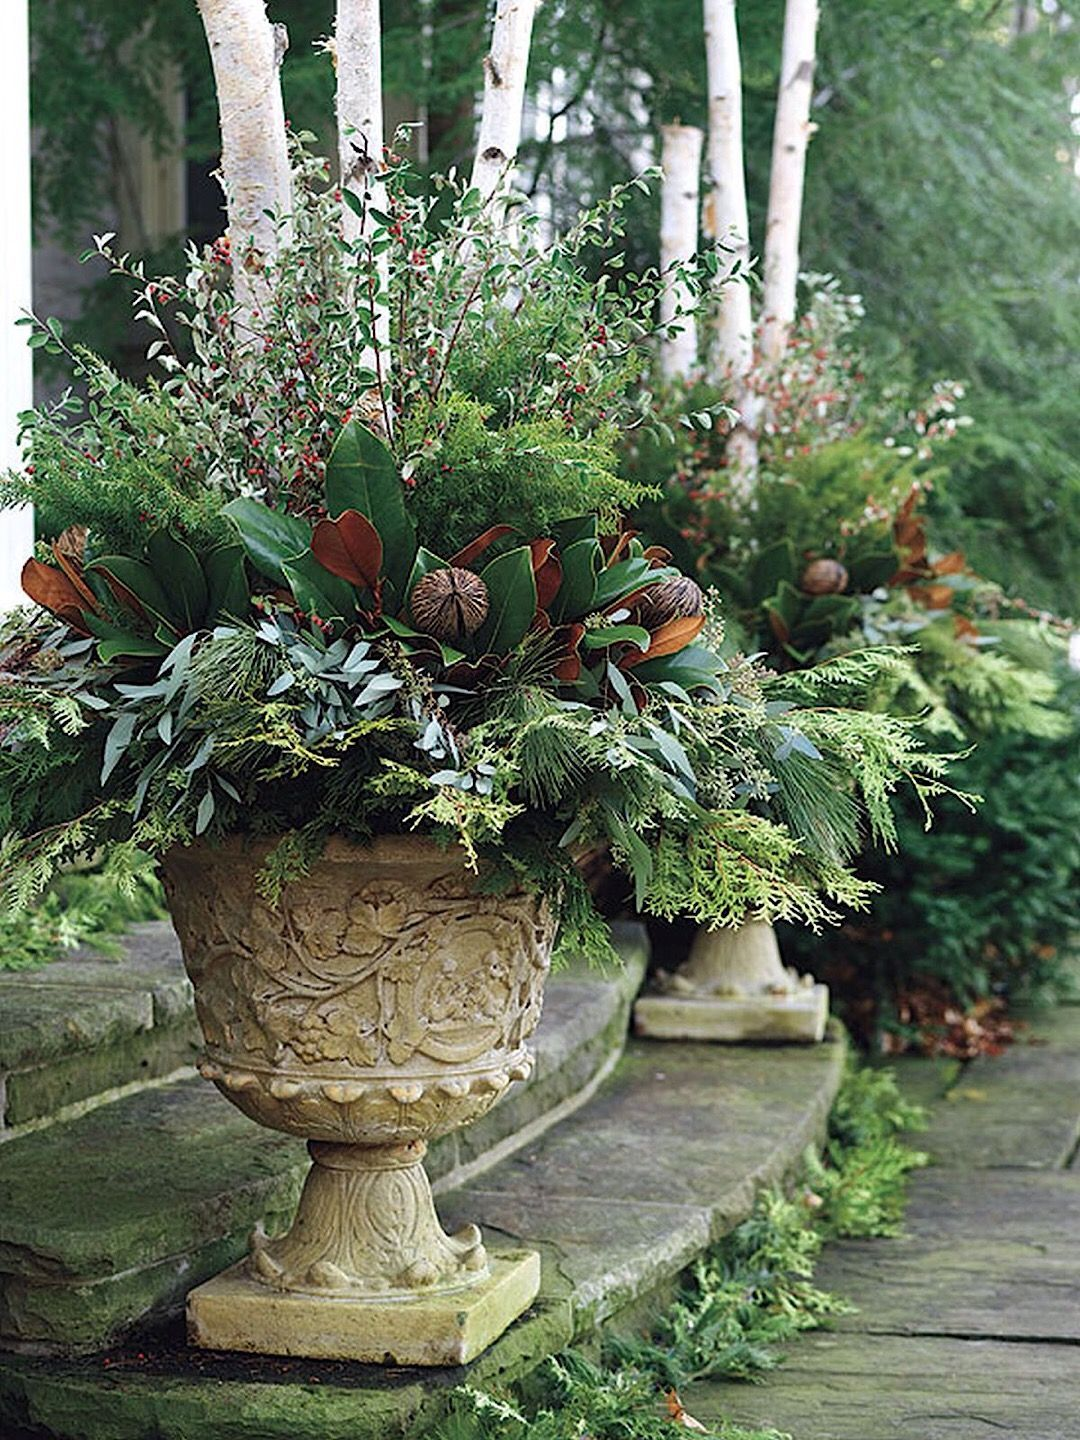 10 Winter Container Garden Ideas, Most Brilliant as well as Stunning #wintergardening